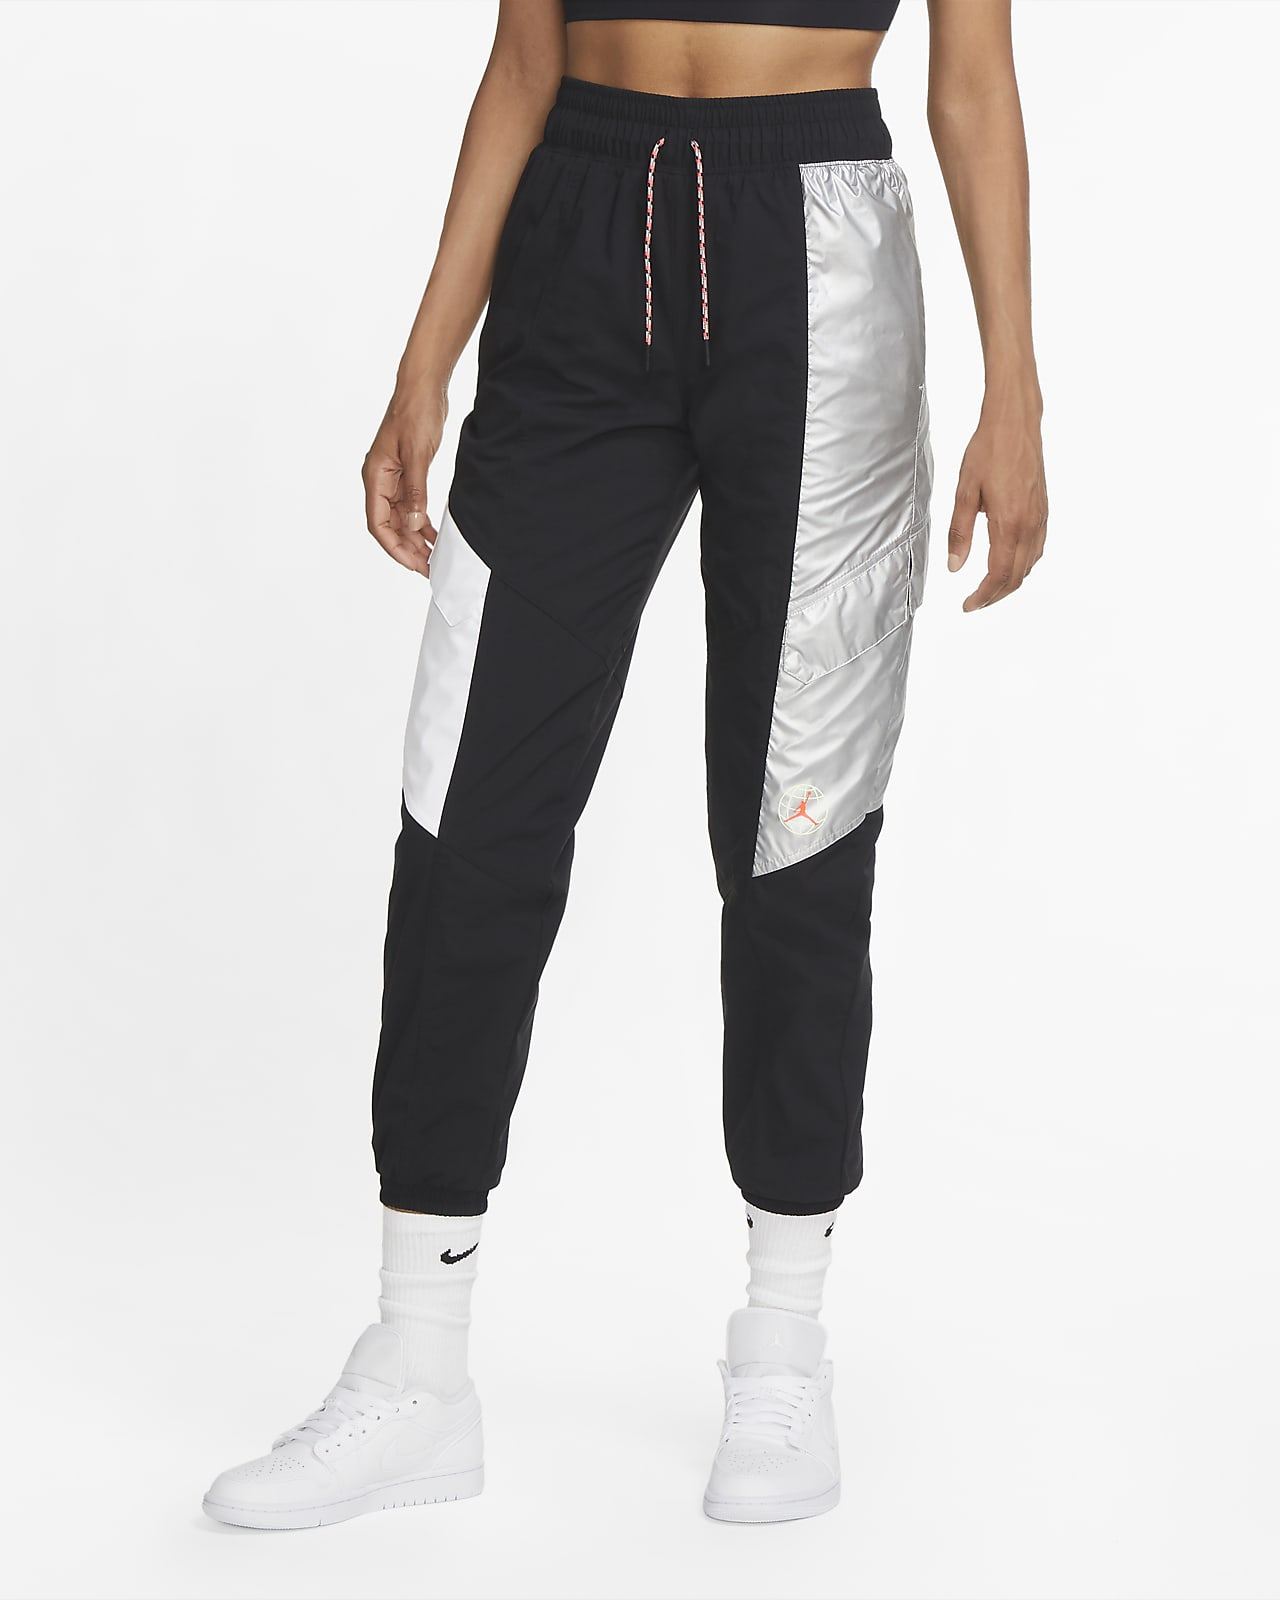 Jordan Winter Utility Women's Trousers